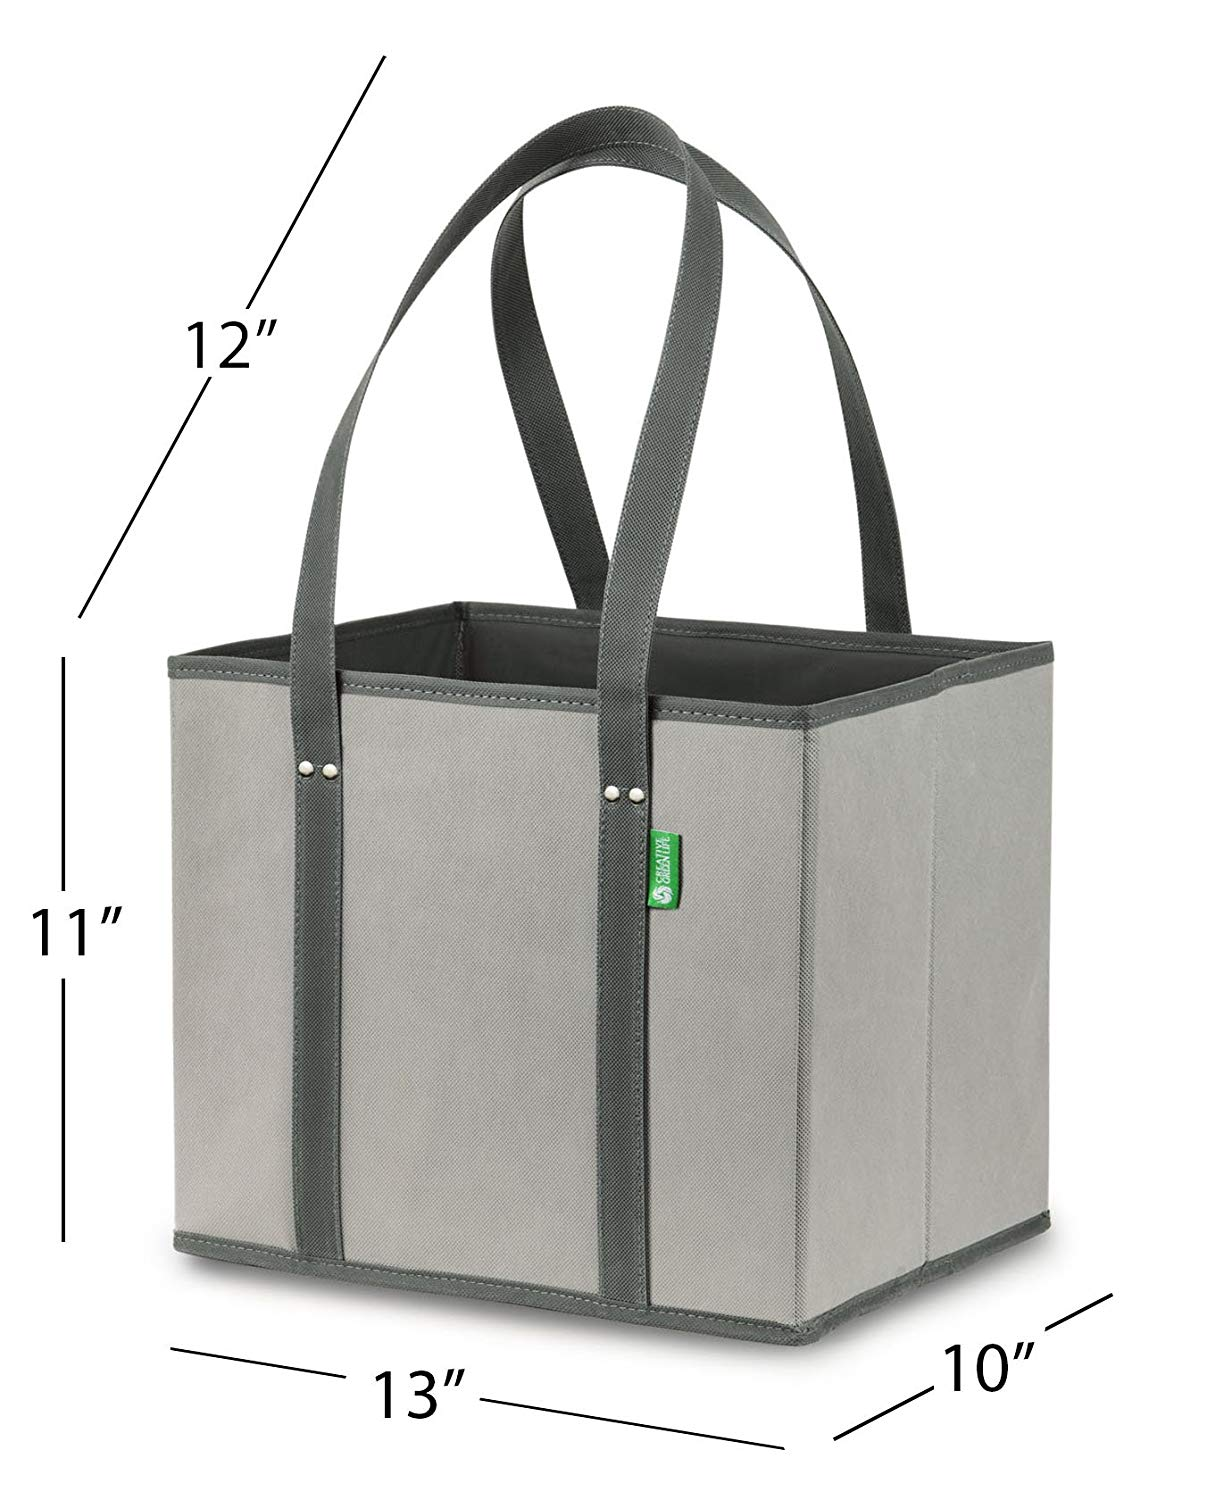 Wenzhou Colorbag Reusable Grocery Bag Shopping Box Tote Collapsible Bag